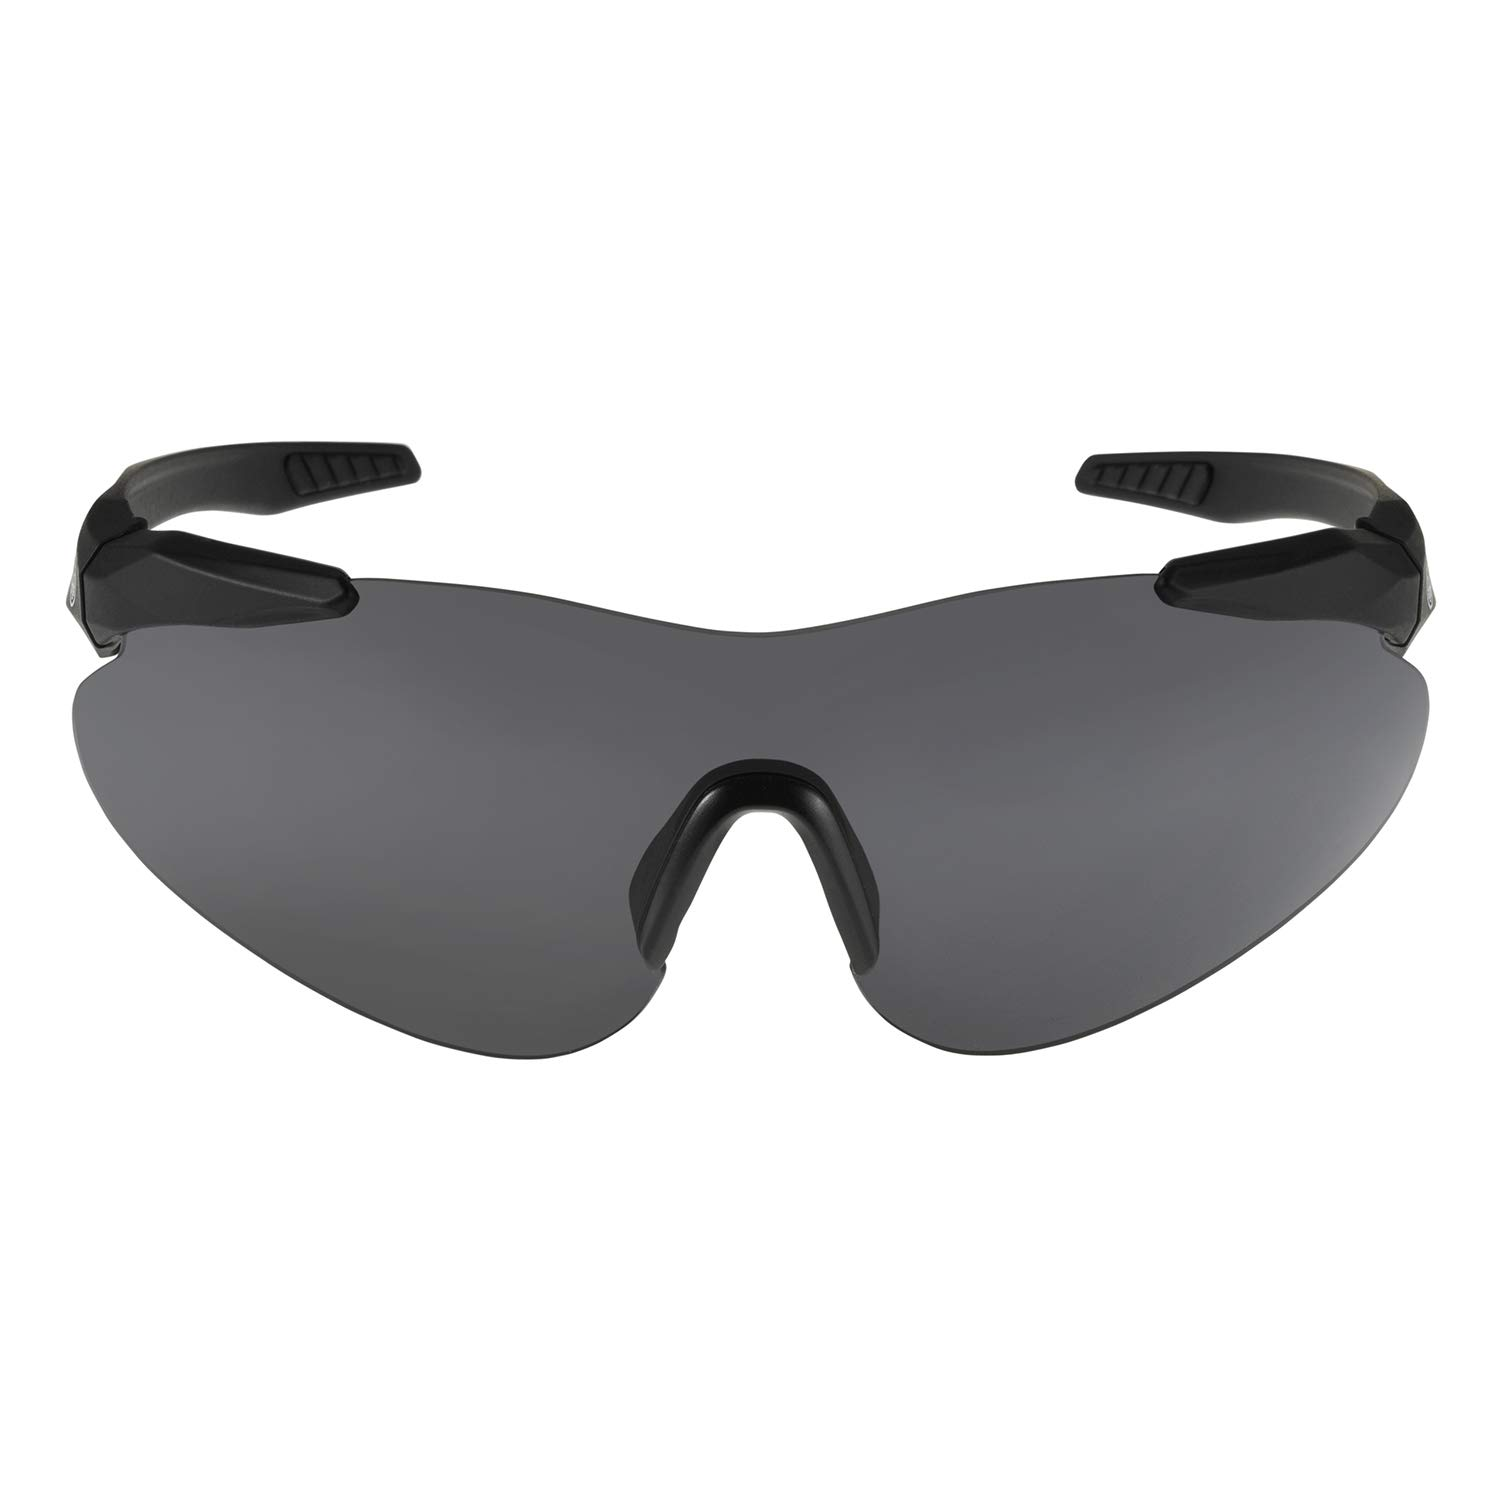 Beretta Shooting Safety Glasses With Policarbonate Injected Lens; Black by Beretta